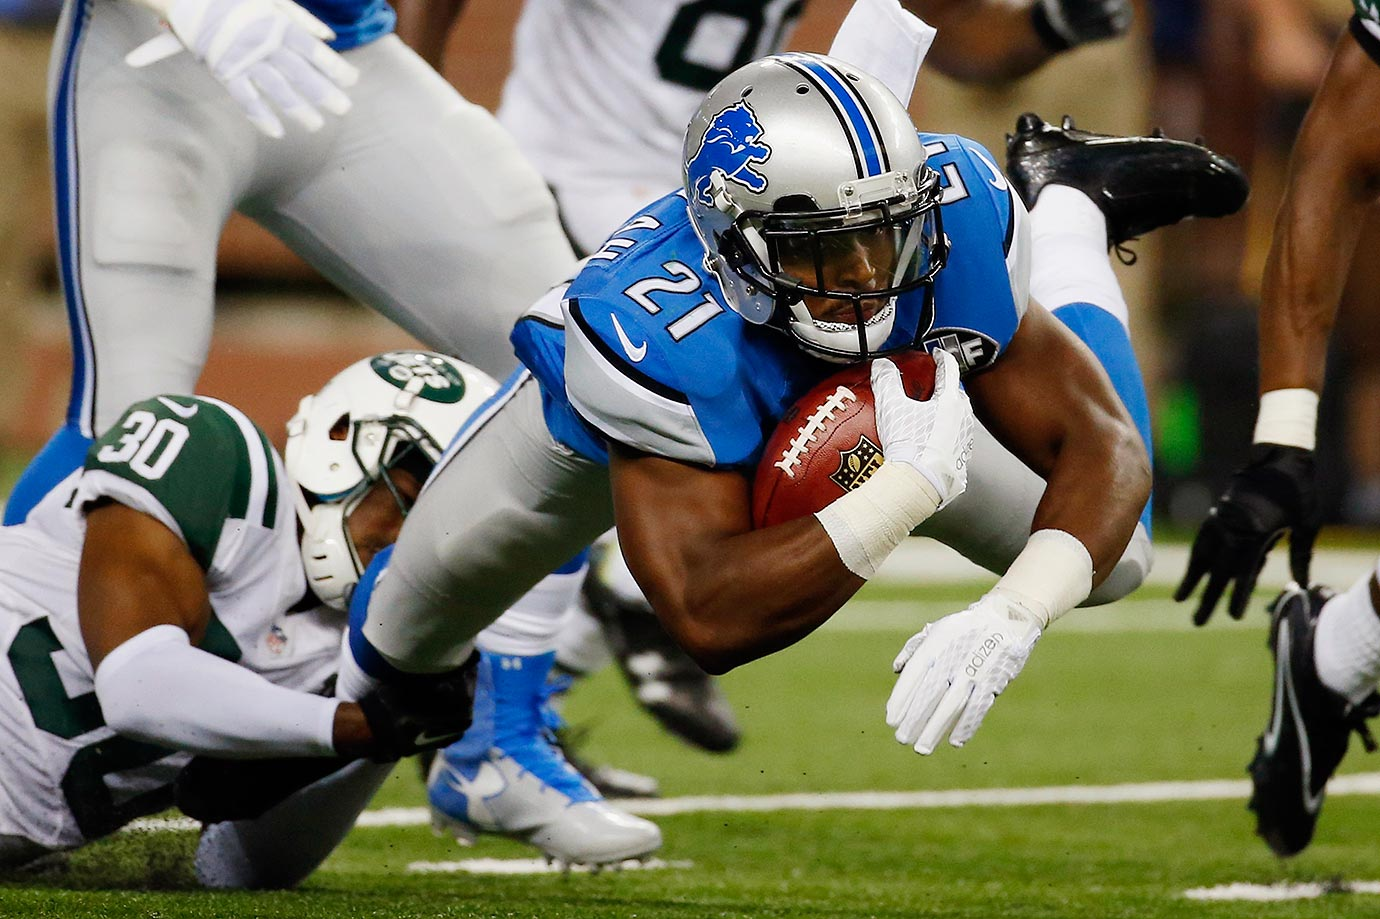 Ameer Abdullah is getting high praise from prospective fantasy football owners, but then again, so did Jahvid Best and pretty much every rookie Lions running back not named Barry or Billy. They also lost the heart of their defense when DT Ndamukong Suh signed with the Dolphins. Nick Fairley and C.J. Mosley are also gone, leaving Haloti Ngata an even bigger hole to fill.